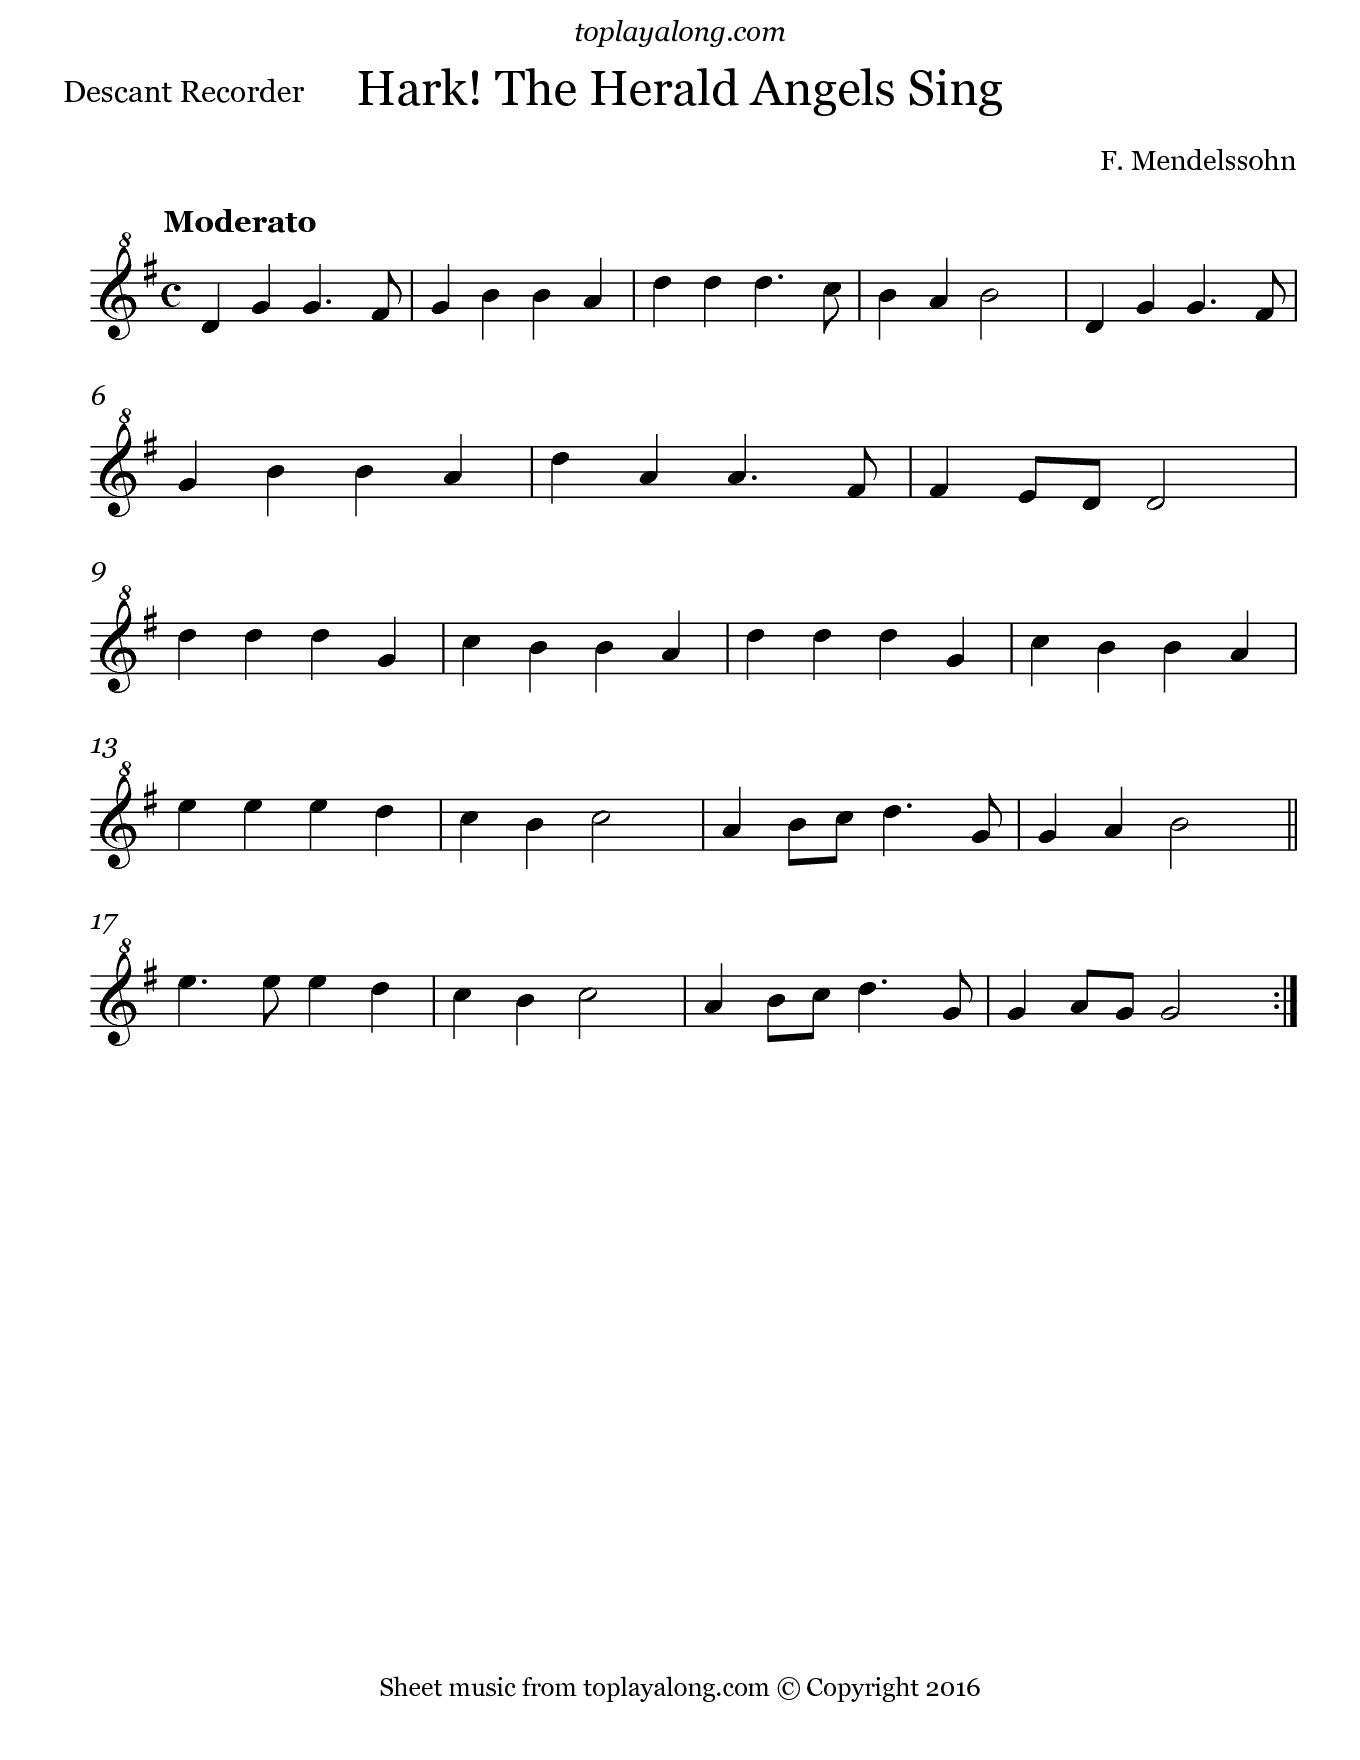 Hark! The Herald Angels Sing by Mendelssohn. Sheet music for Recorder, page 1.